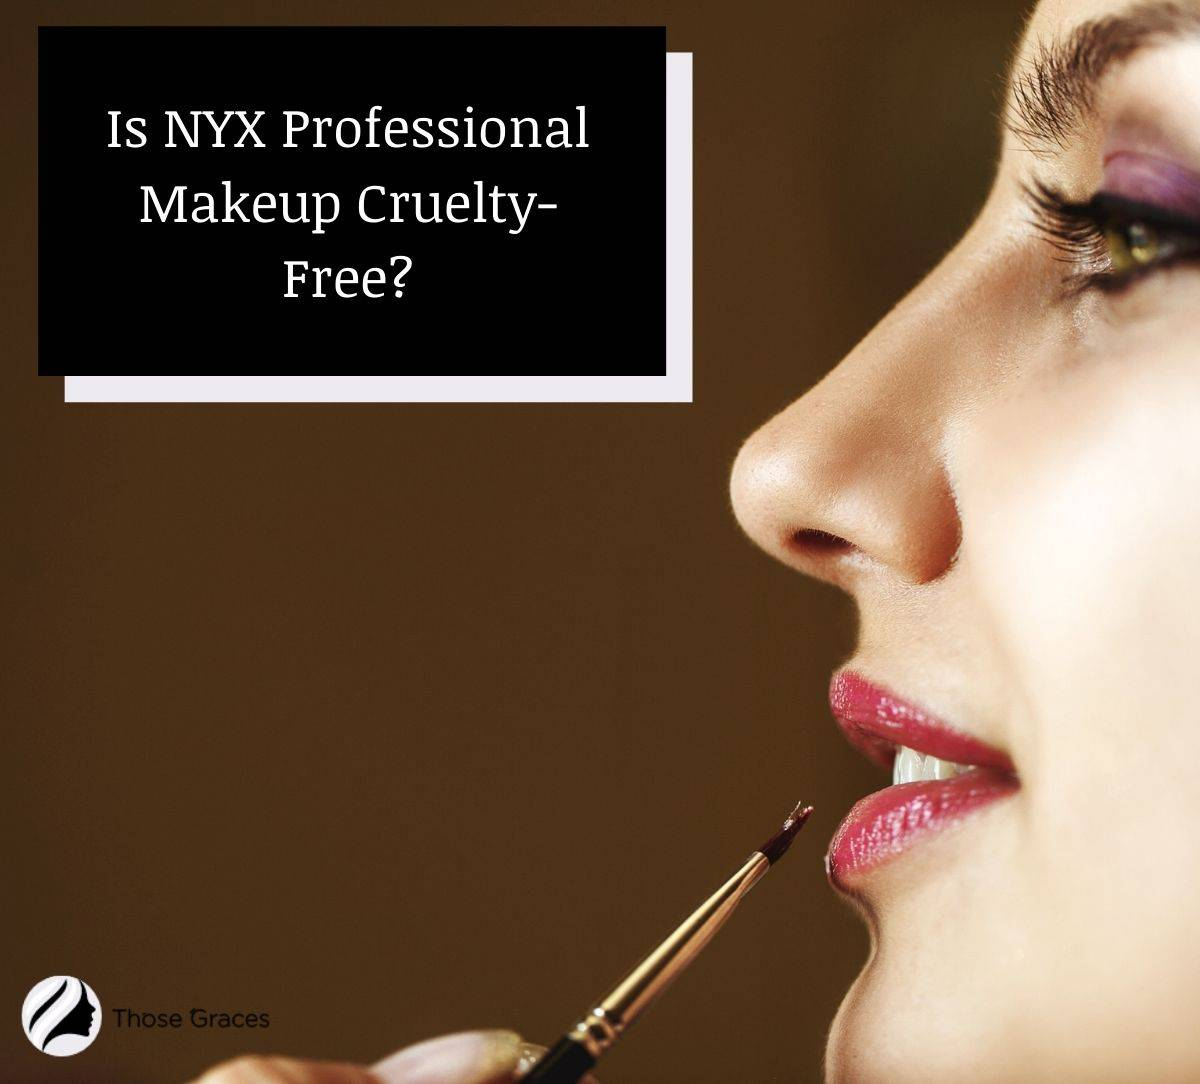 a side view of a beautiful woman putting a wine colored NYX lipstick but is NYX cruelty free?